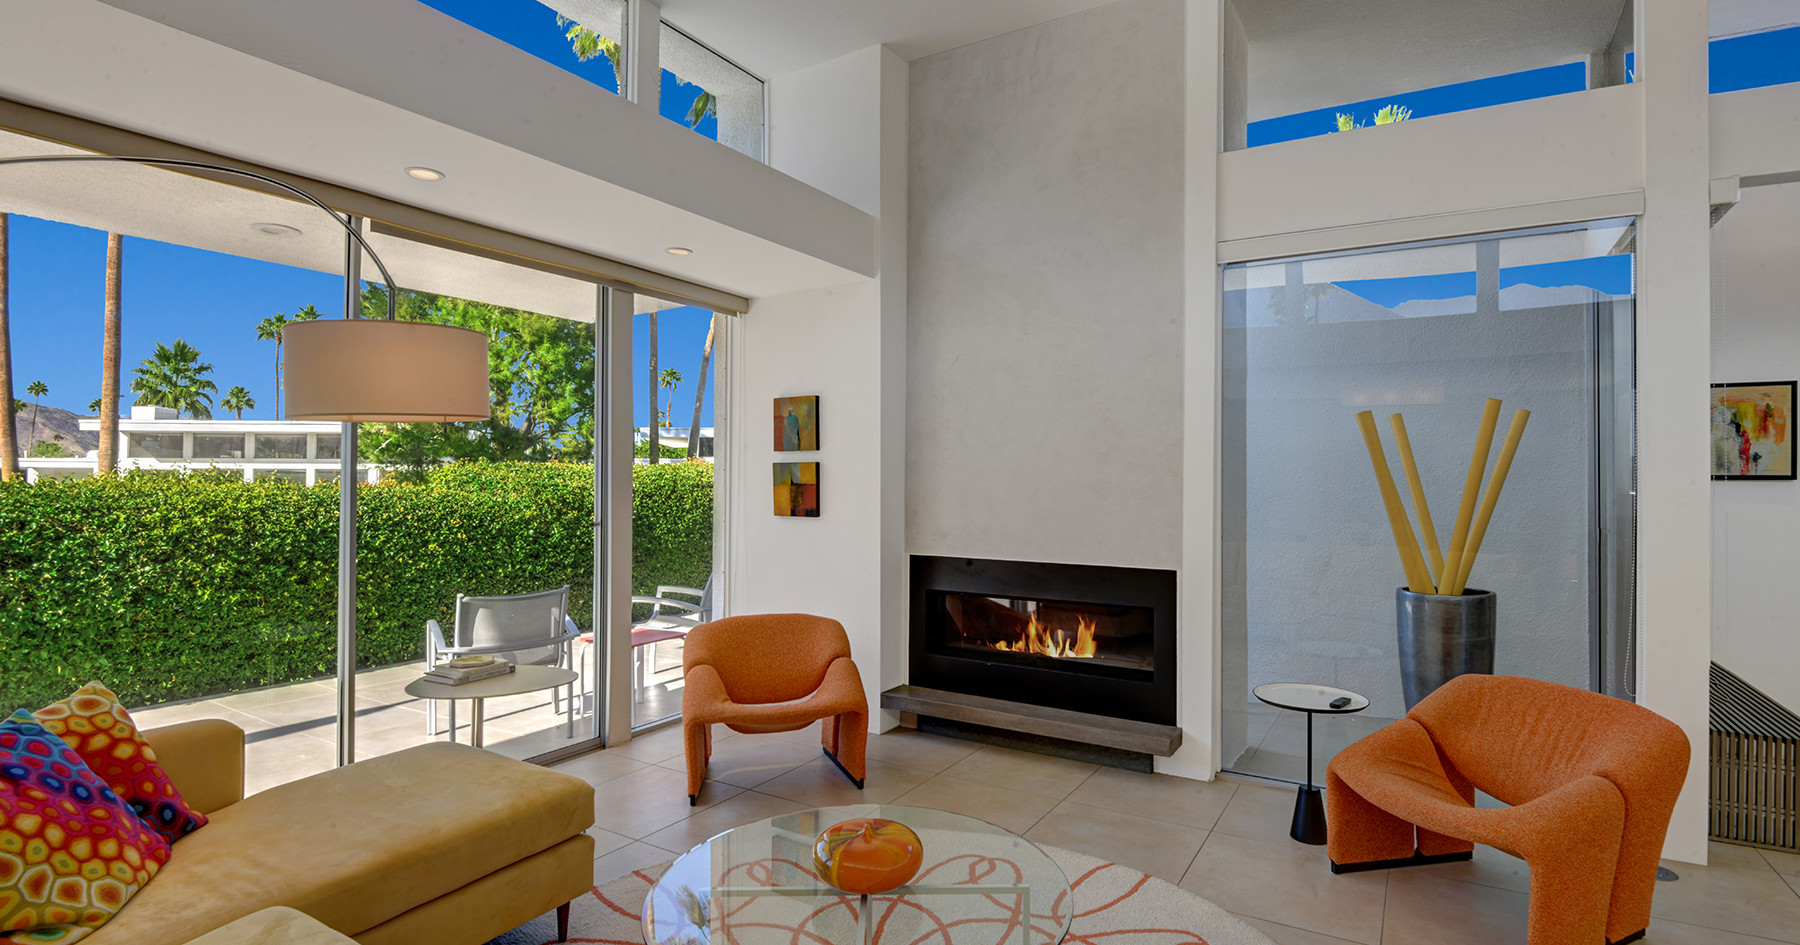 LIVING ROOM WITH FIREPLACE MLS.jpg